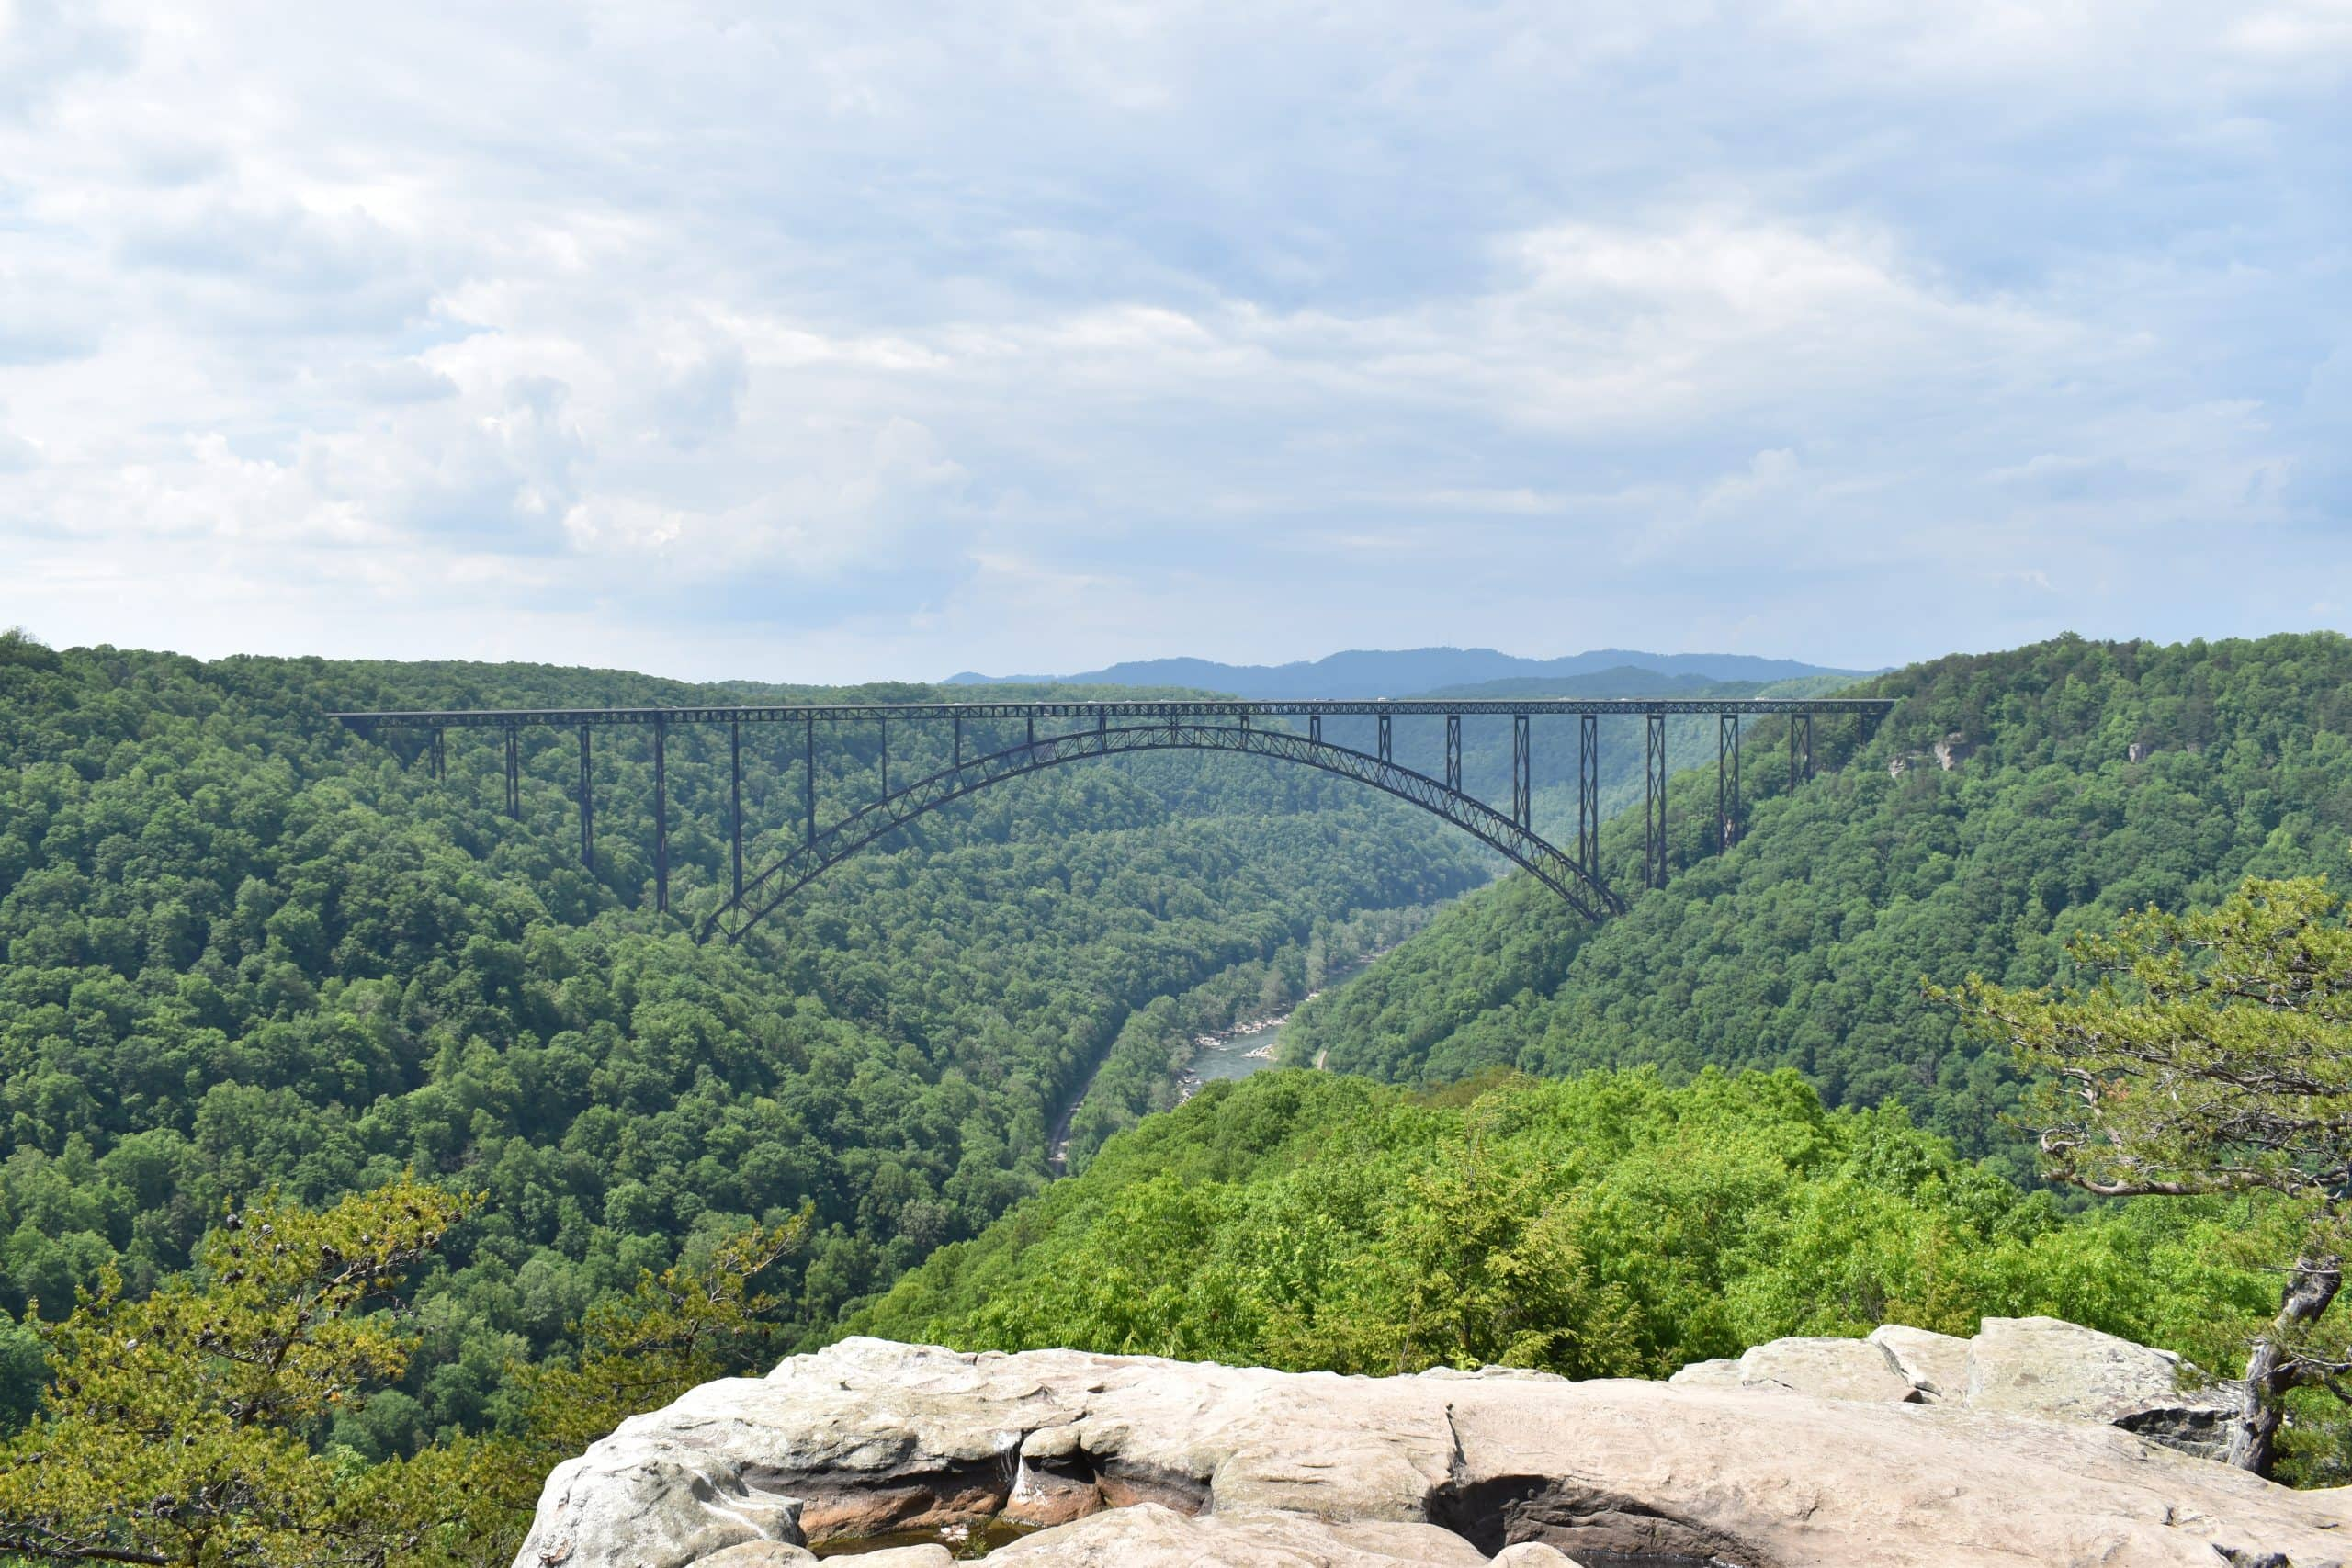 Road Trips From Roanoke Va - New River Gorge